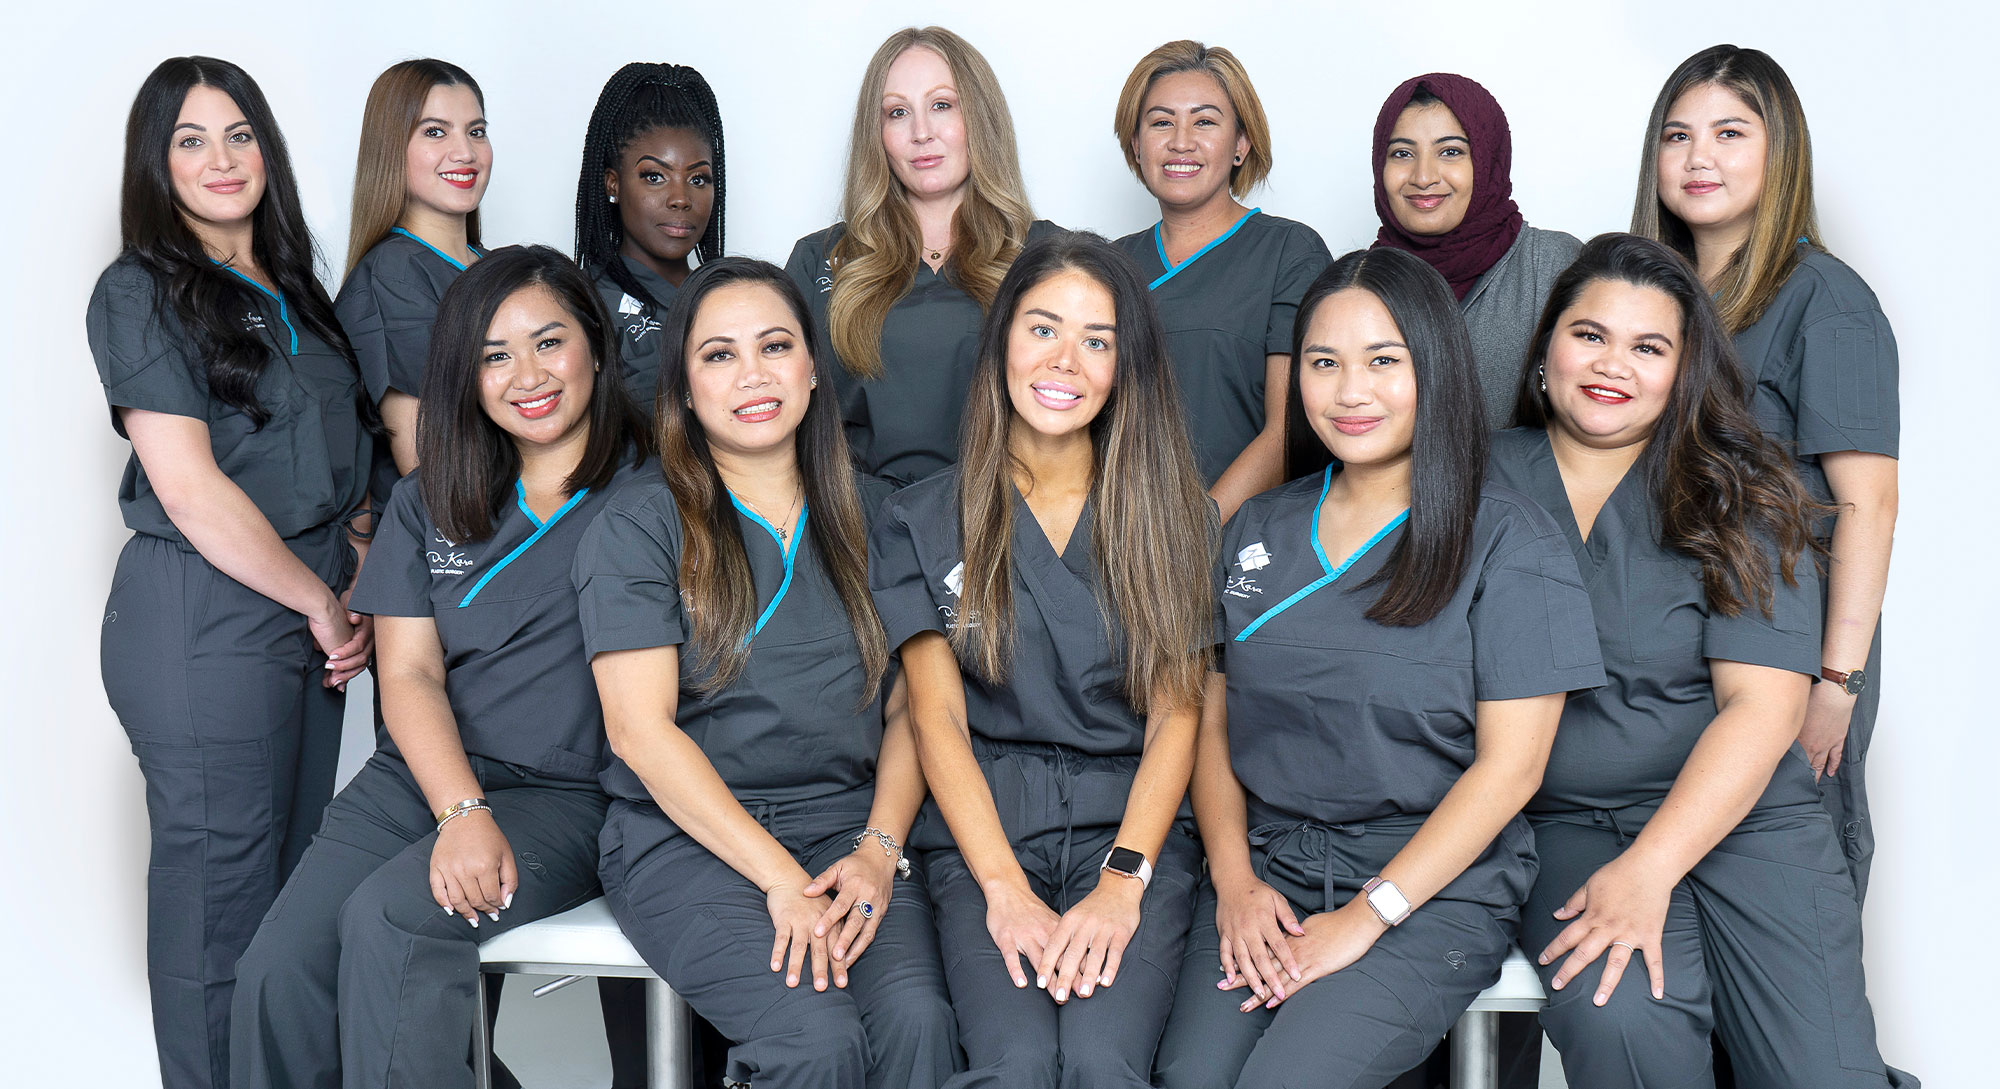 The staff of Toronto plastic surgeon Dr Mahmood Kara.